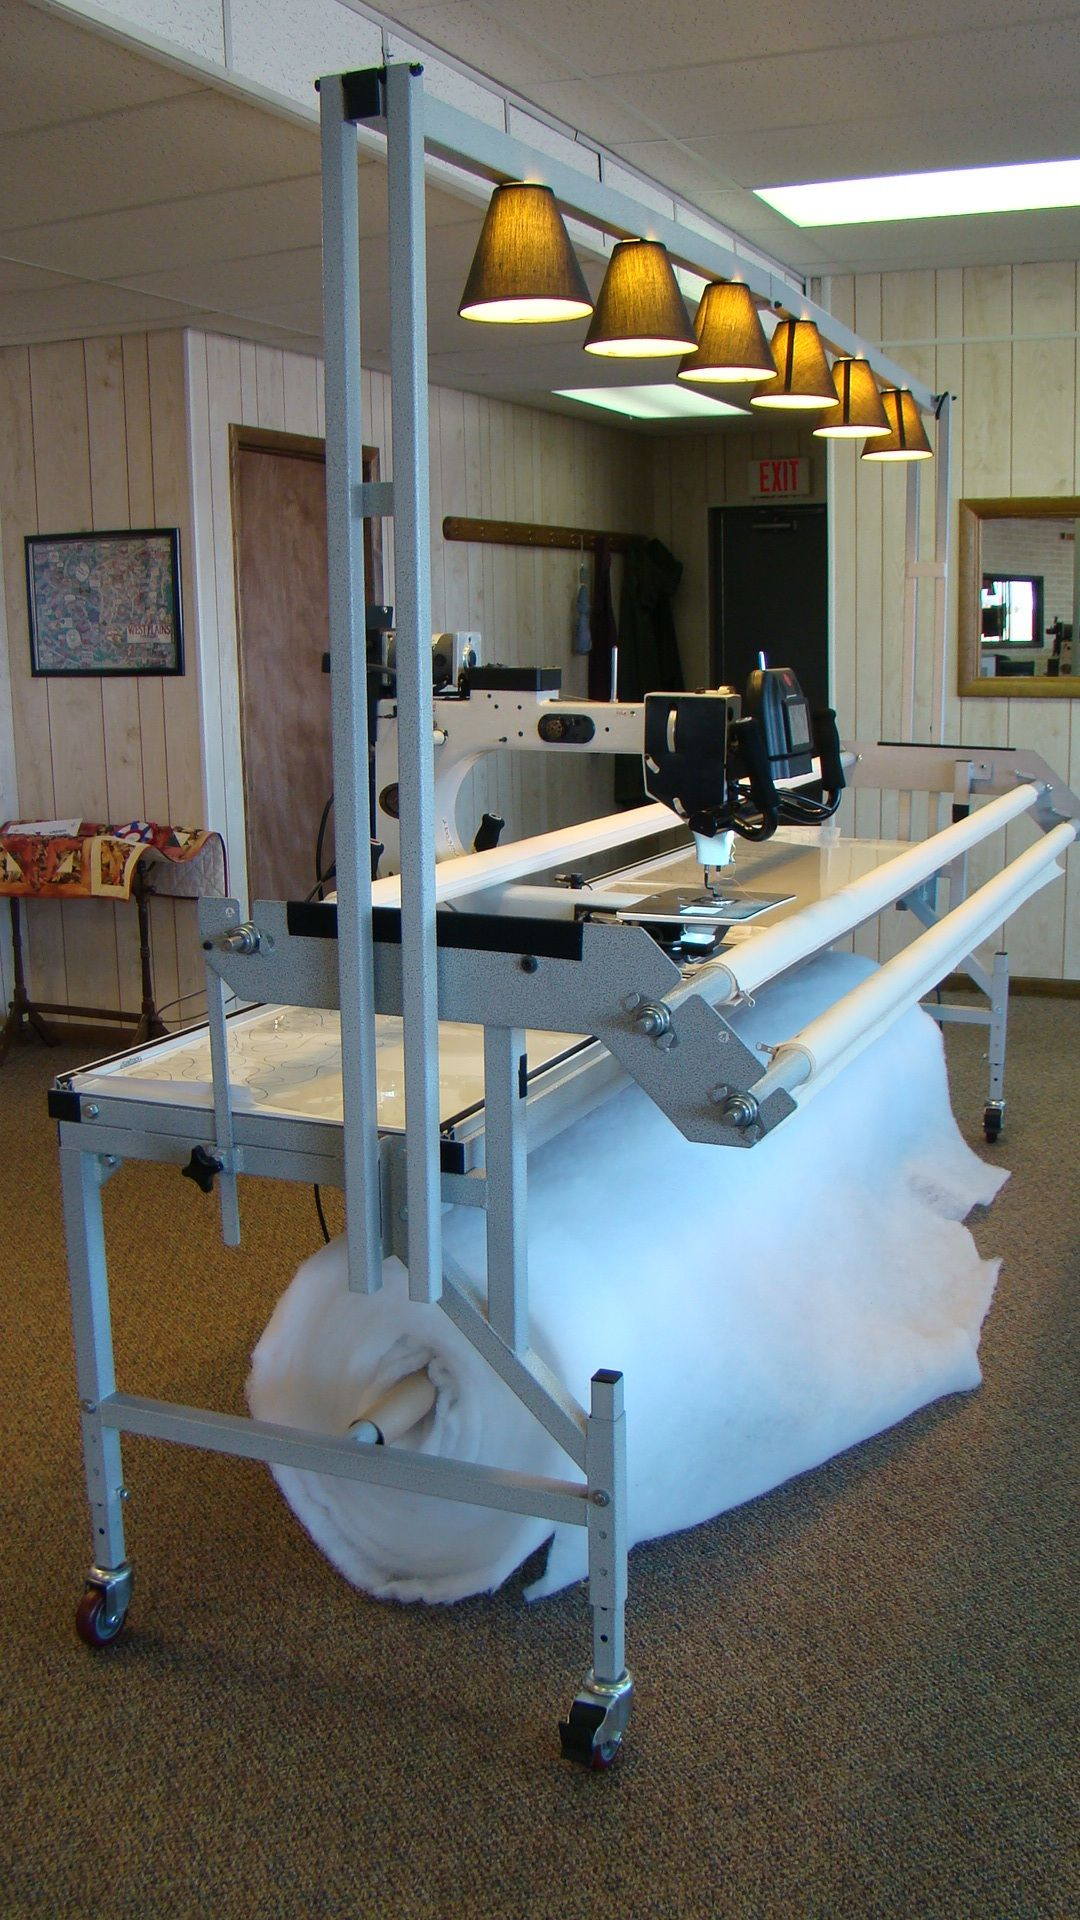 My Gammill Long Arm Quilting Machine | The Fanatic Quilter ... : computerized long arm quilting machine - Adamdwight.com